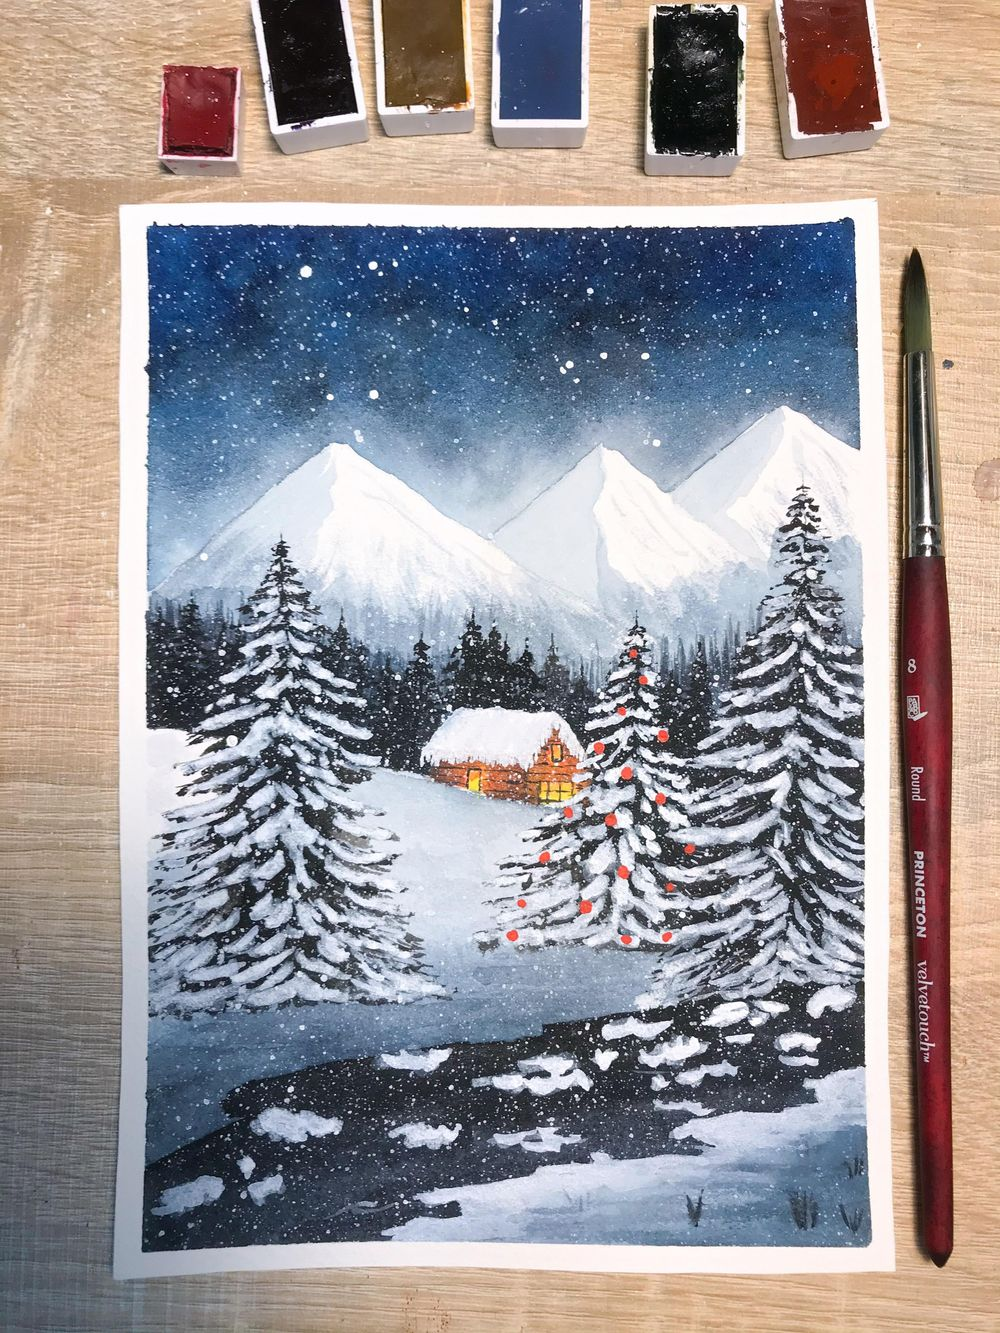 snowy christmas night - image 1 - student project